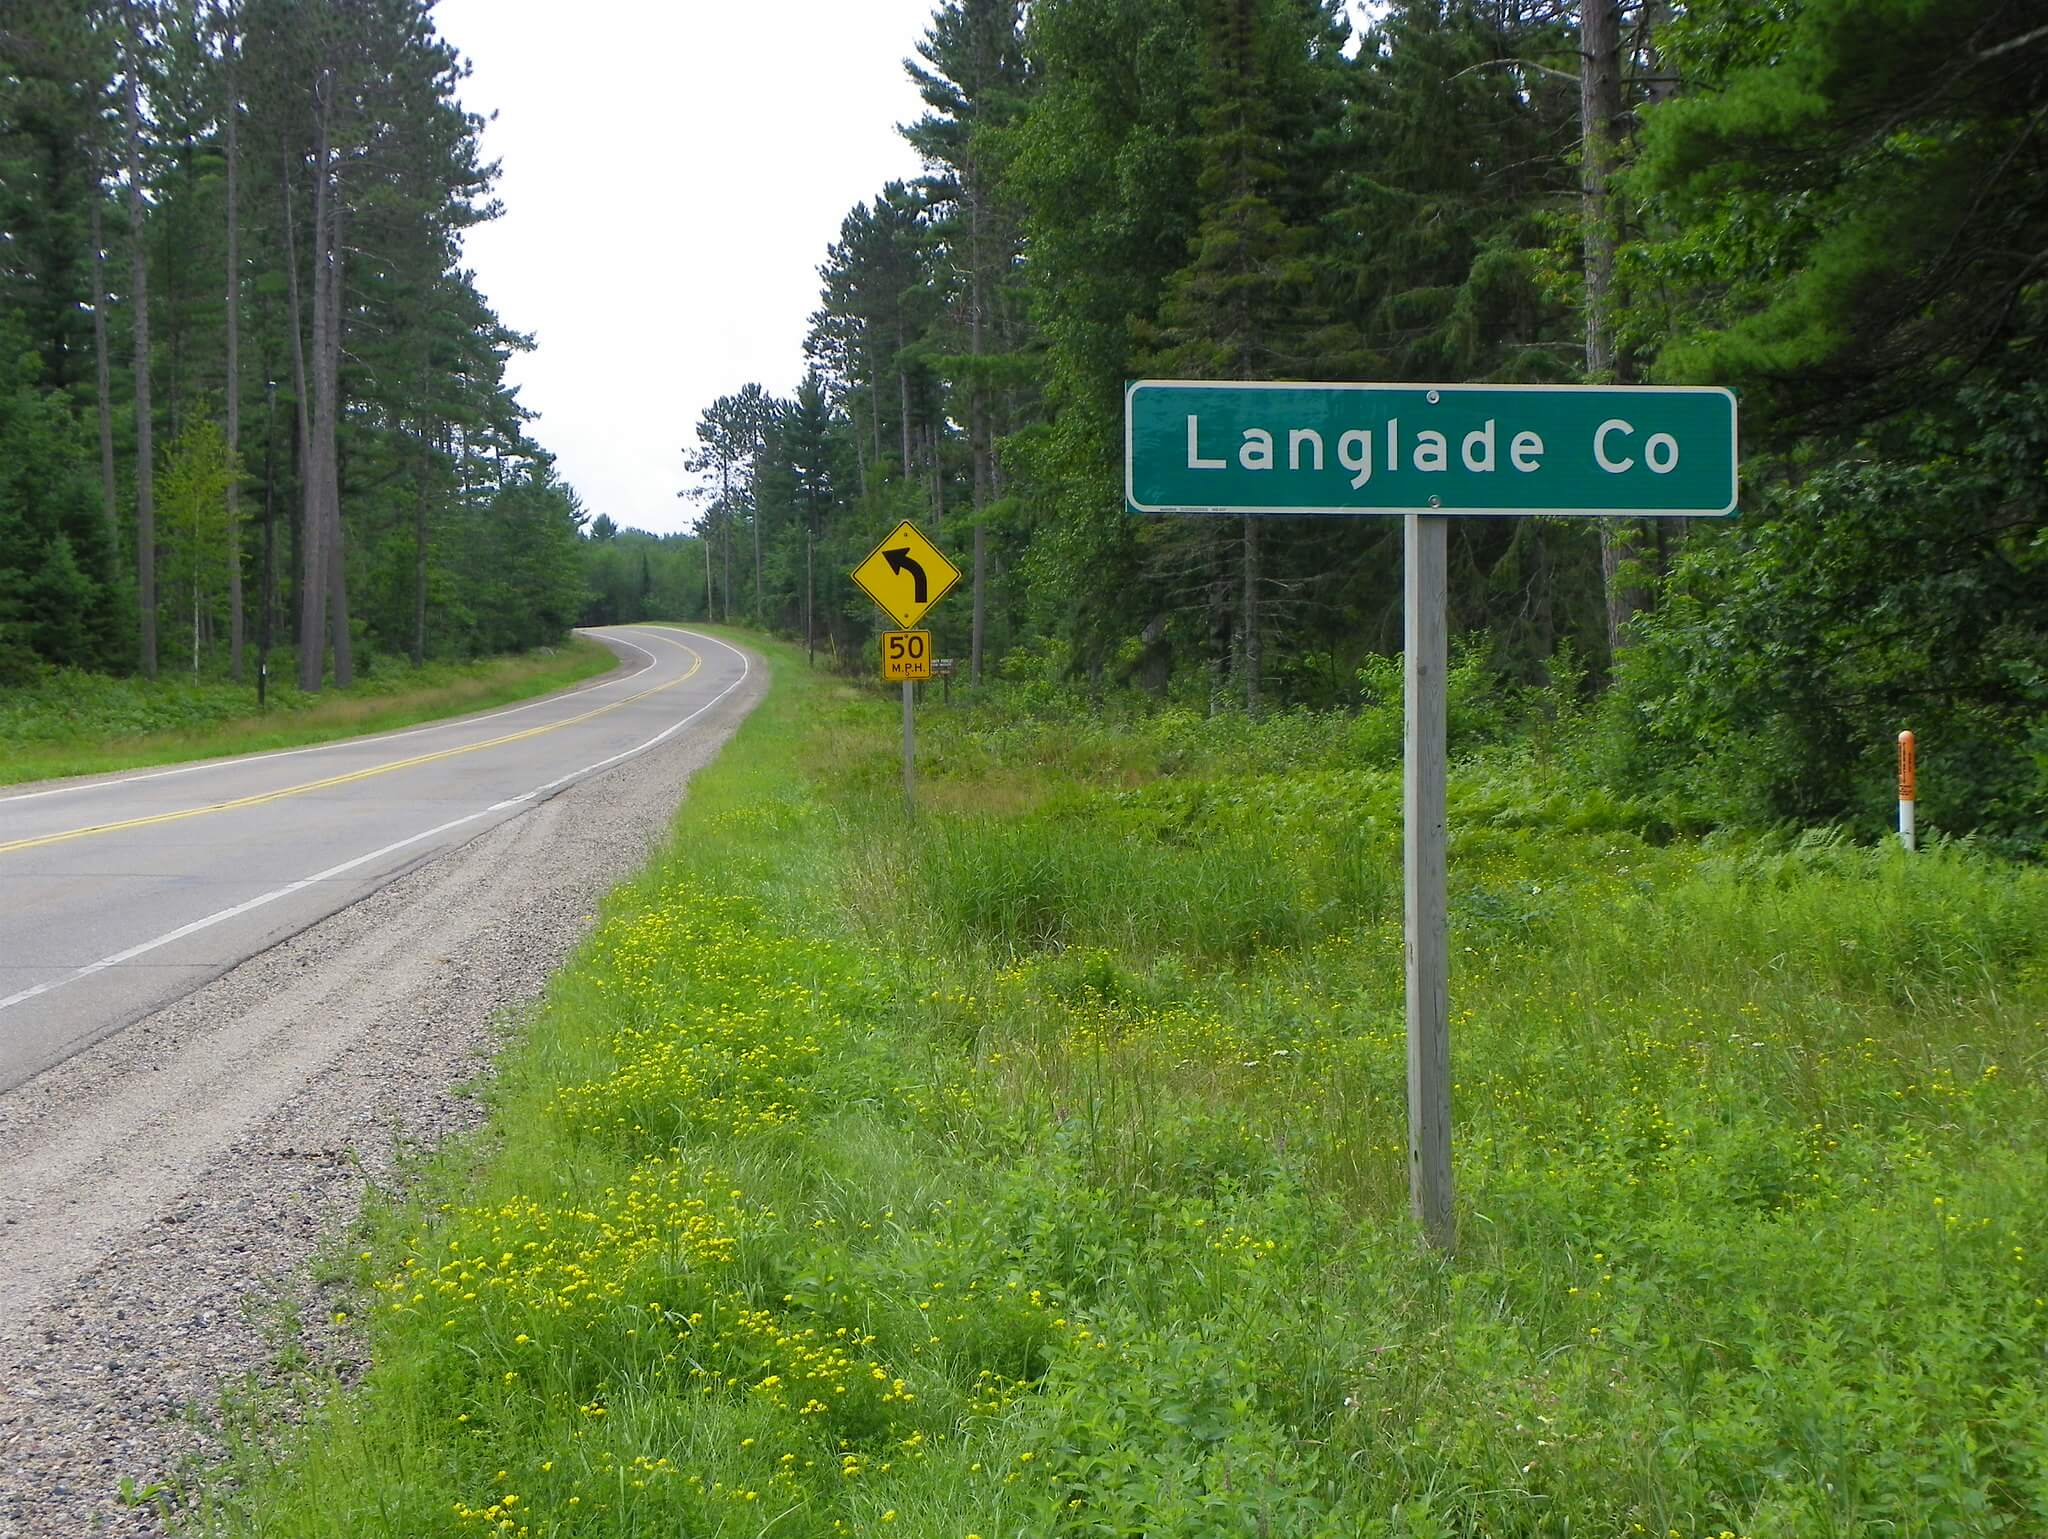 Highway roadside at the Langlade County, Forest County line